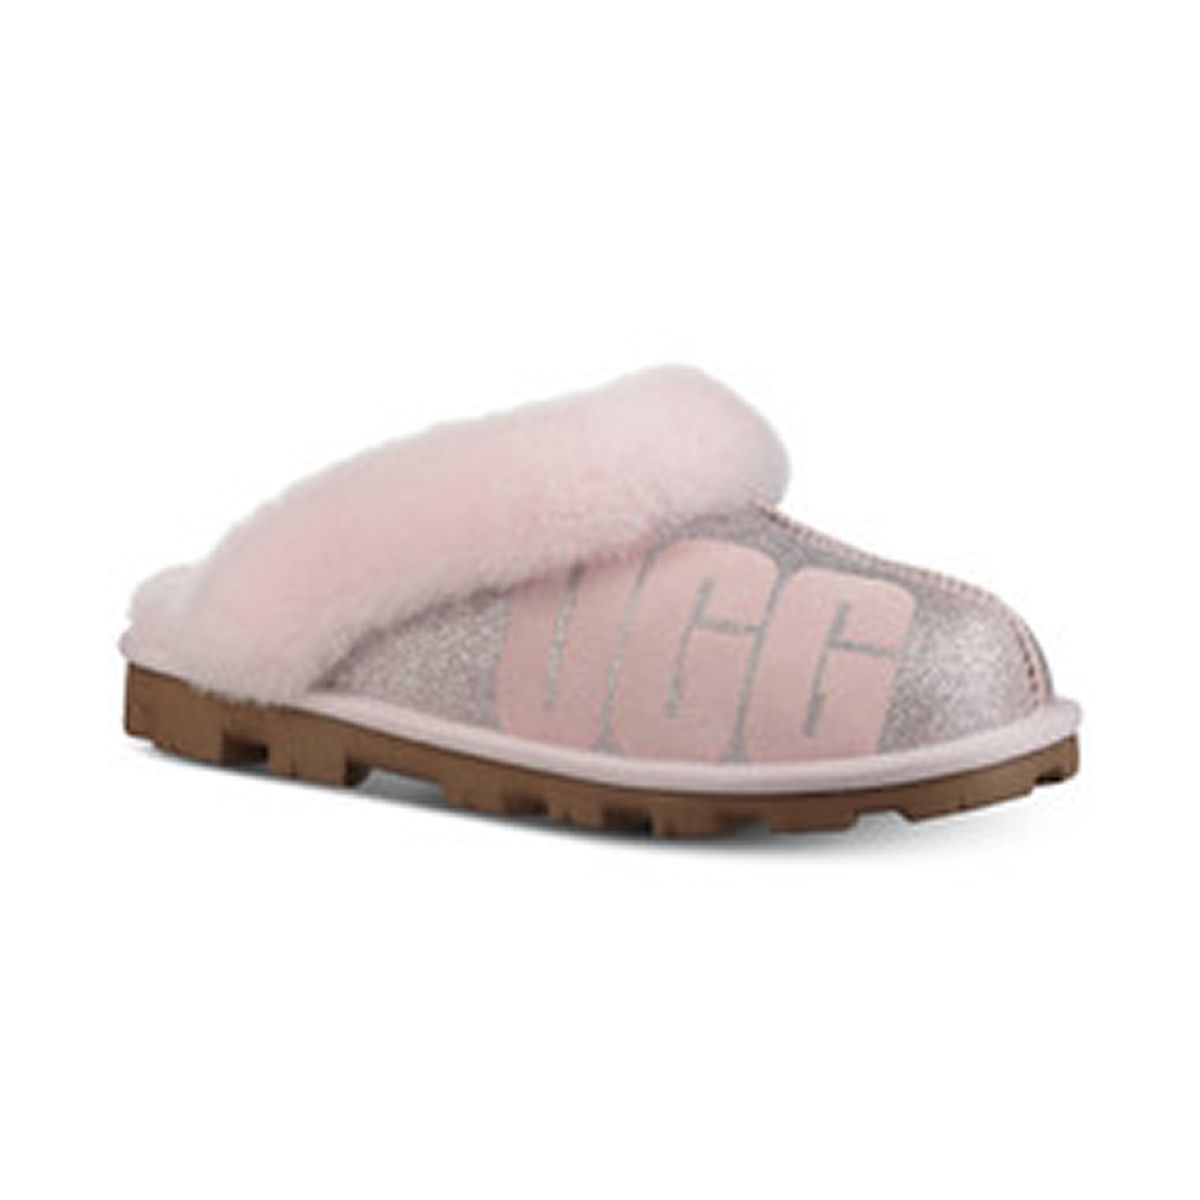 086cdf408d8 UGG® Women's Slippers - Macy's